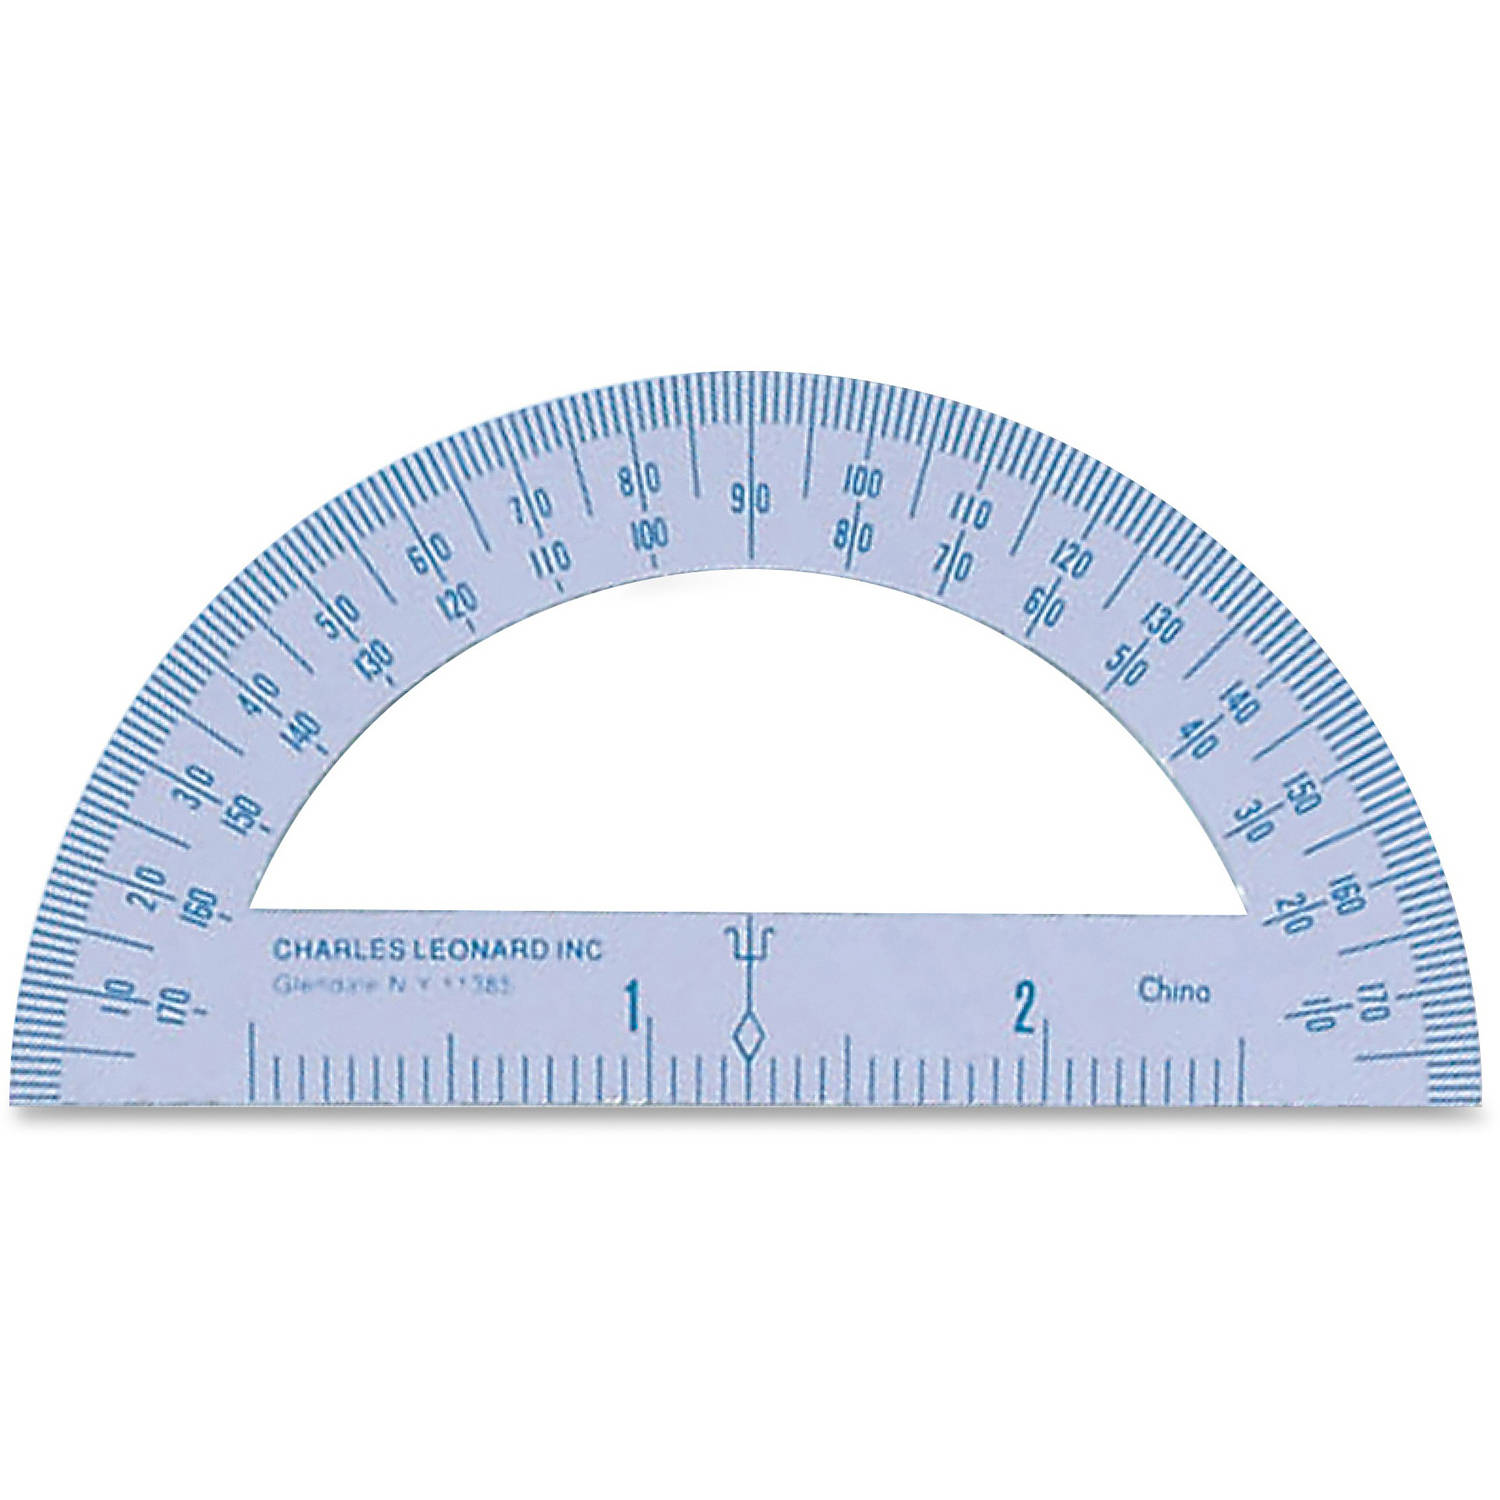 CLI Metal Protractor, Pack of 36, White by CHARLES LEONARD, INC